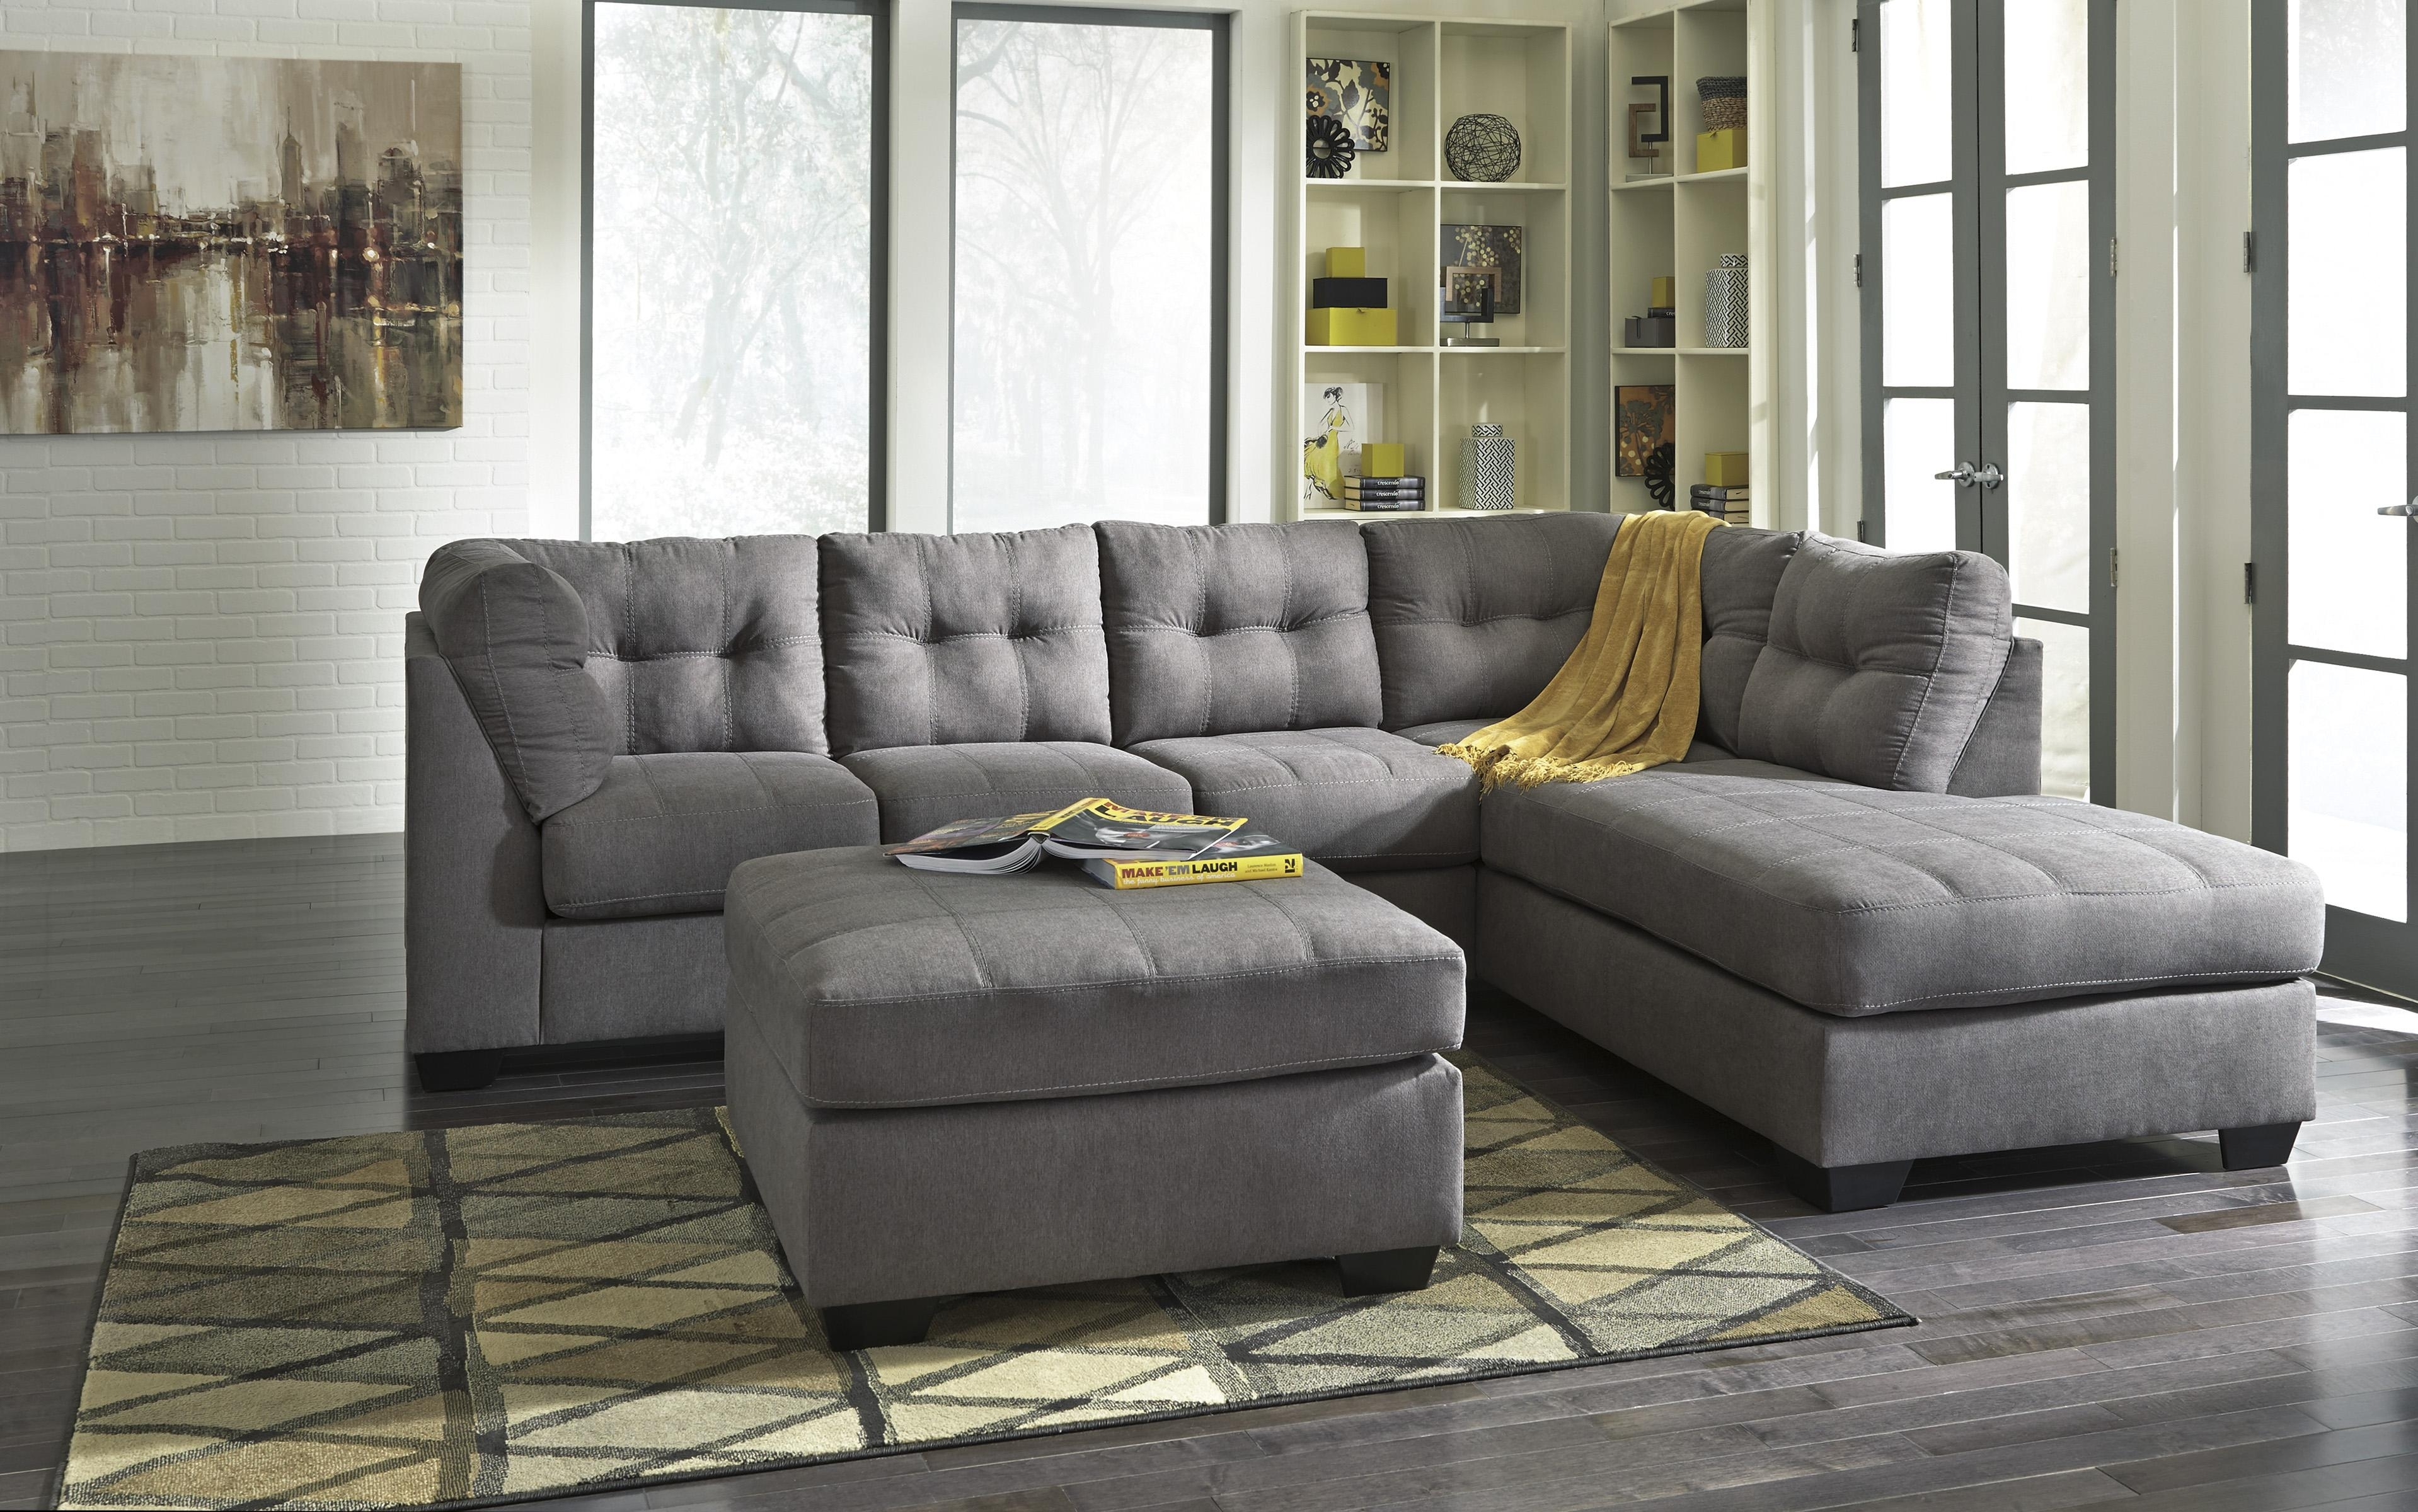 2 Piece Sectional With Right Chaisebenchcraft | Wolf And Pertaining To Aurora 2 Piece Sectionals (Image 1 of 25)